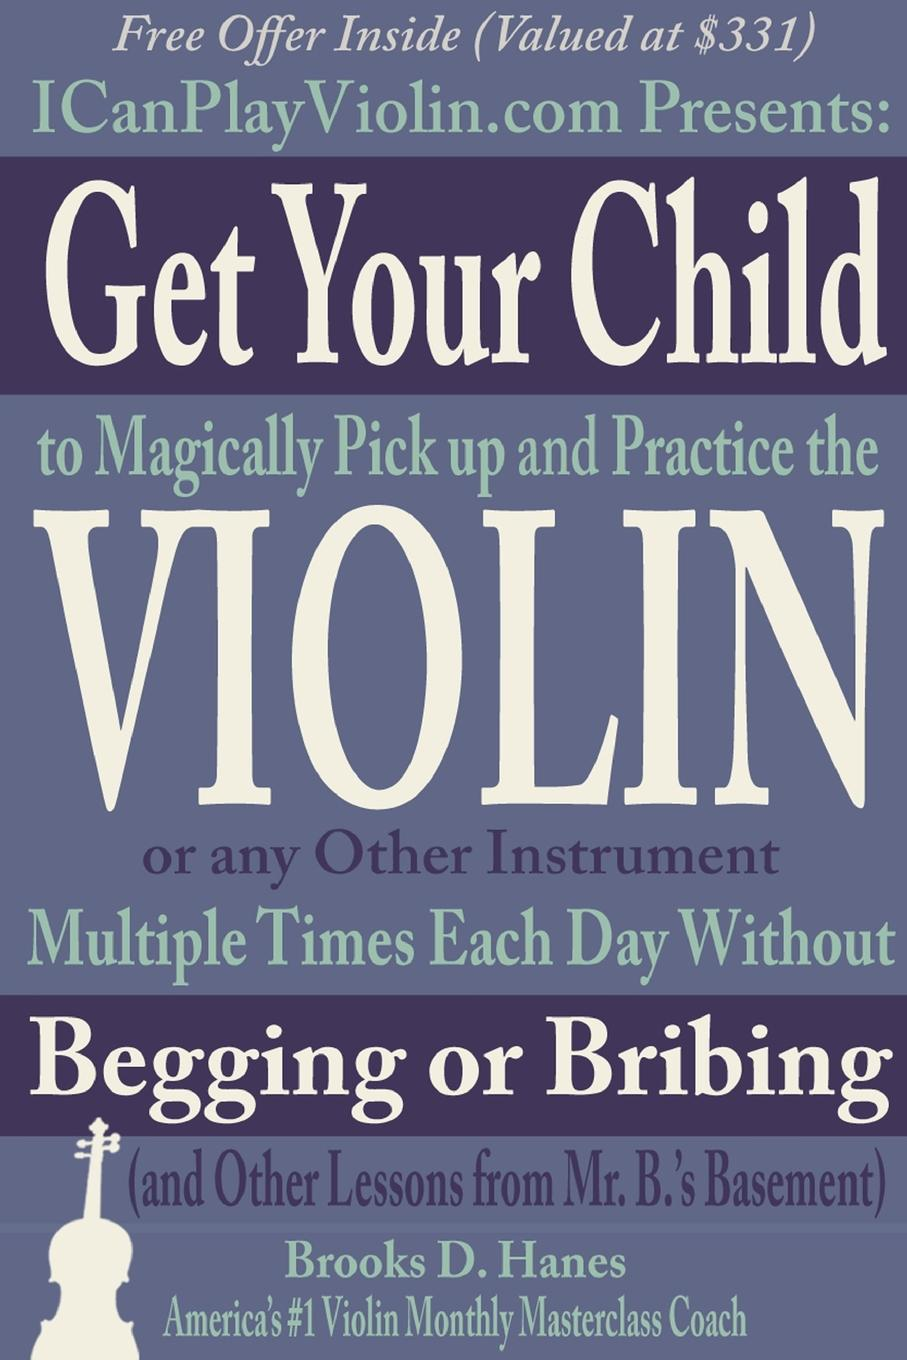 Brooks Hanes Get Your Child to Magically Pick Up and Practice the Violin or Any Other Instrument Multiple Times Each Day Without Begging or Bribing (and Other Lessons from Mr. B..s Basement) the boy from the basement